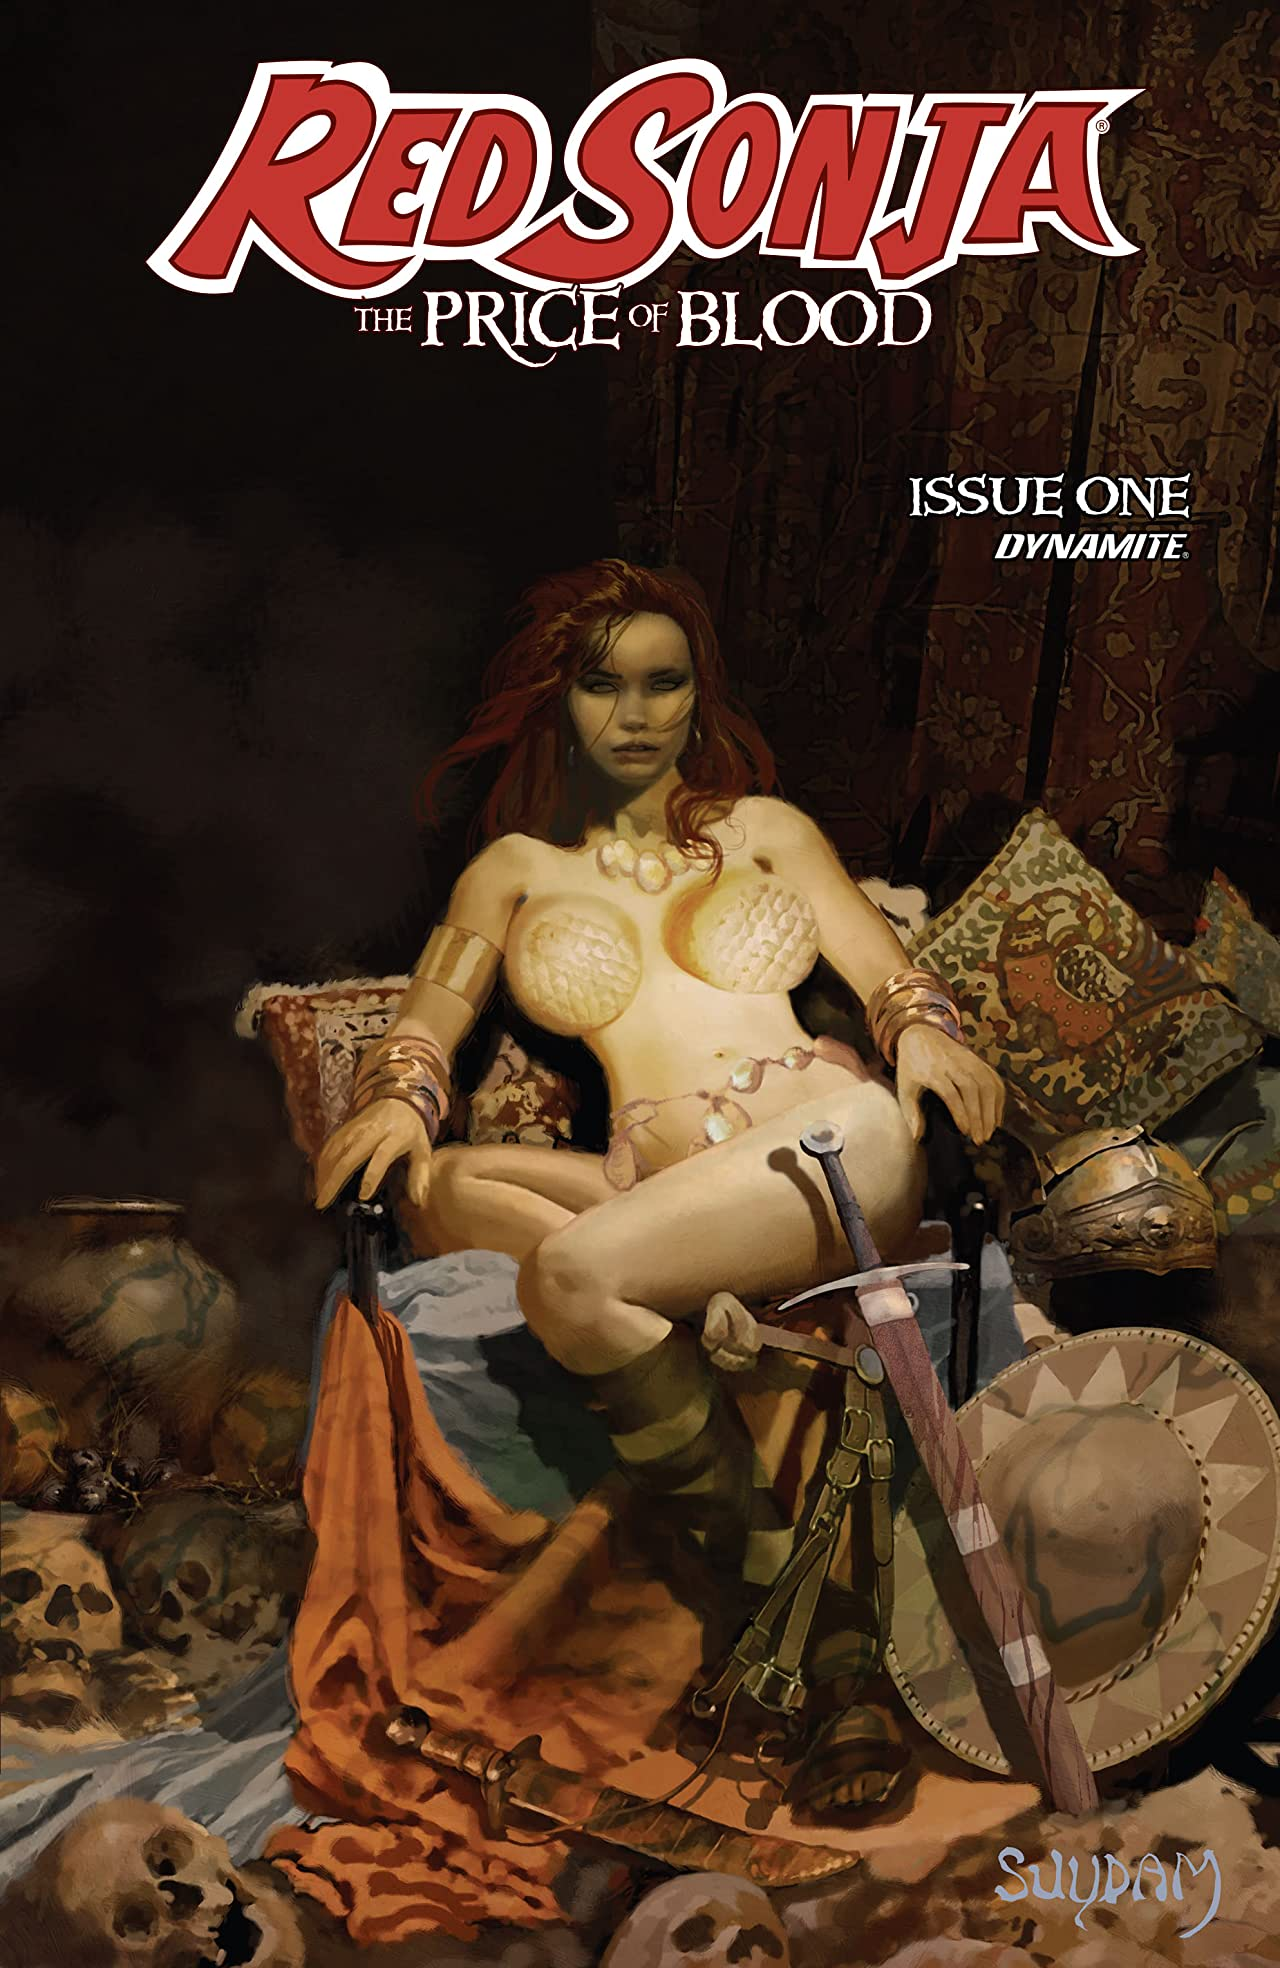 Red Sonja: The Price of Blood #1